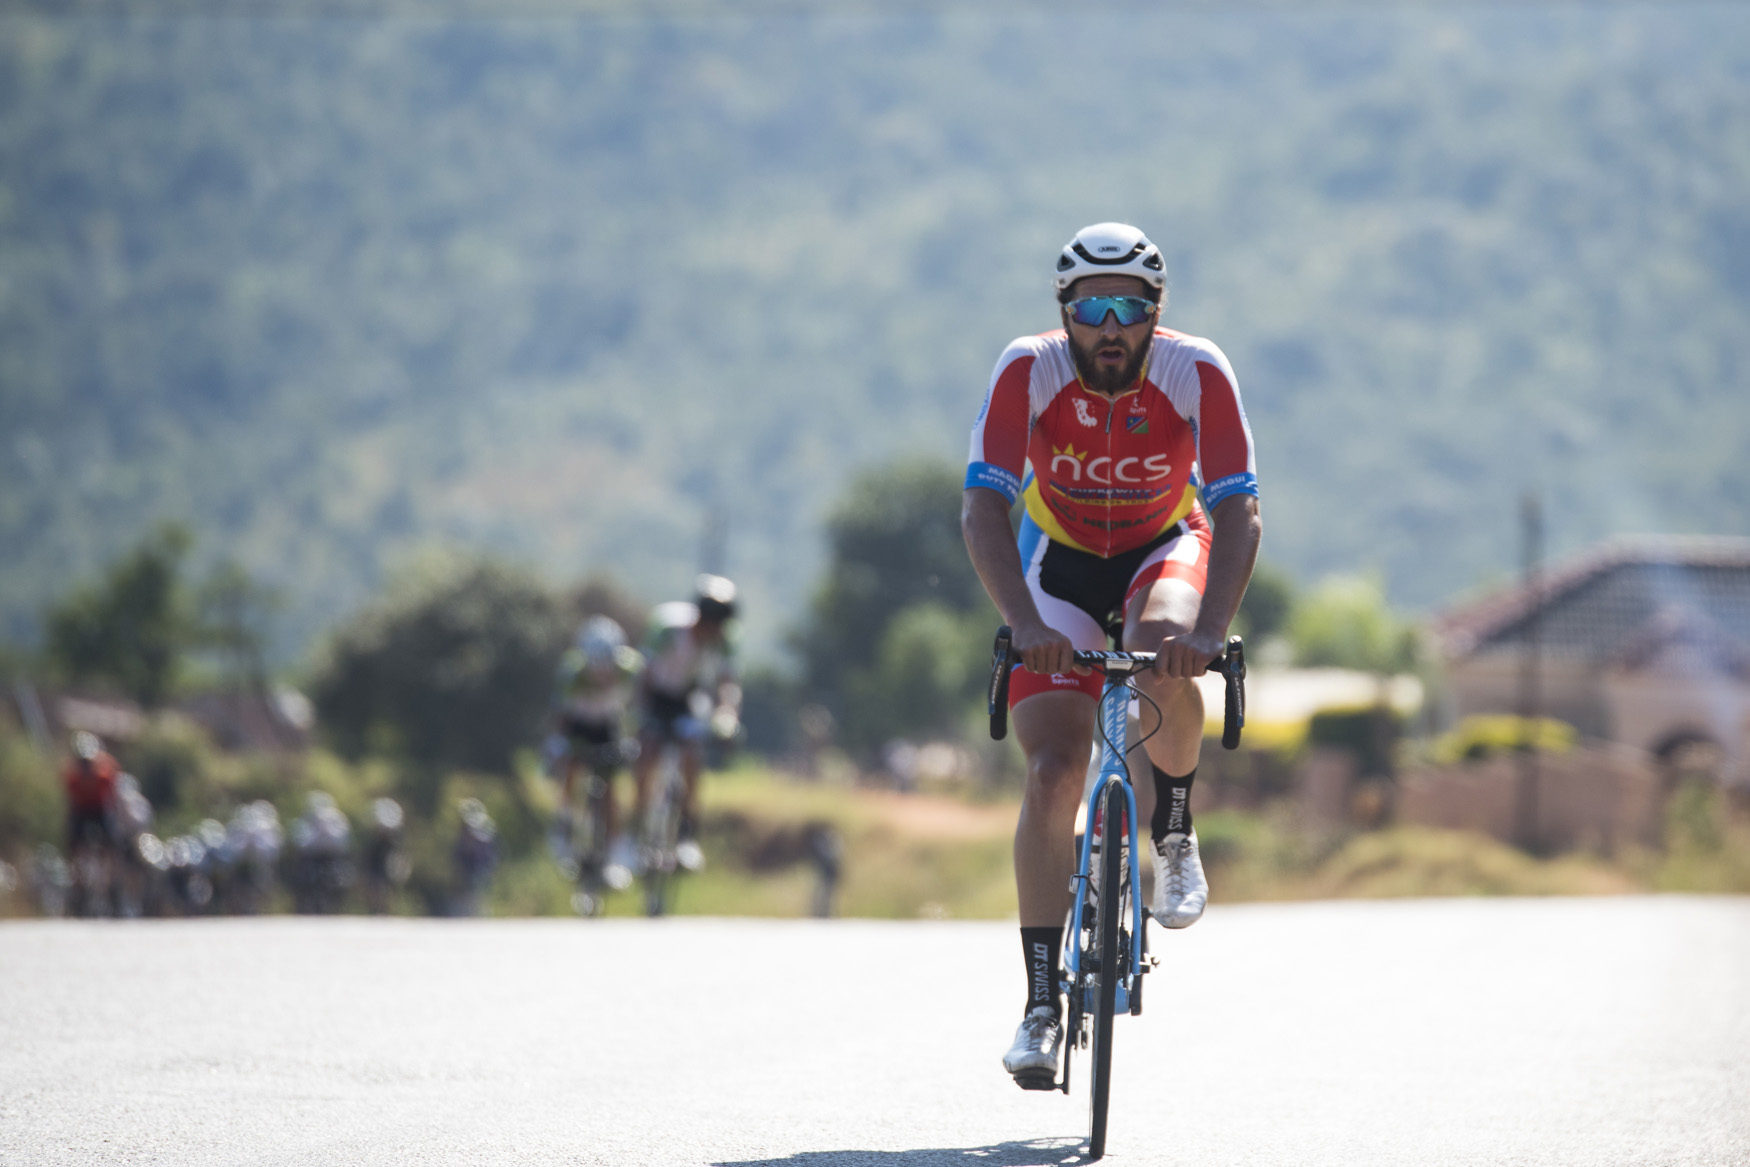 Herman Keller (NCCS Namibia) launched  several attacks, which earned him the Red Jersey for today's stage from  Tzaneen to Old Coach Road, Mt. Agatha, on Stage 3 of the 2019 Tour de Limpopo (UCI 2.2) from 14-18 May © Tour de Limpopo/Andrew Mc Fadden